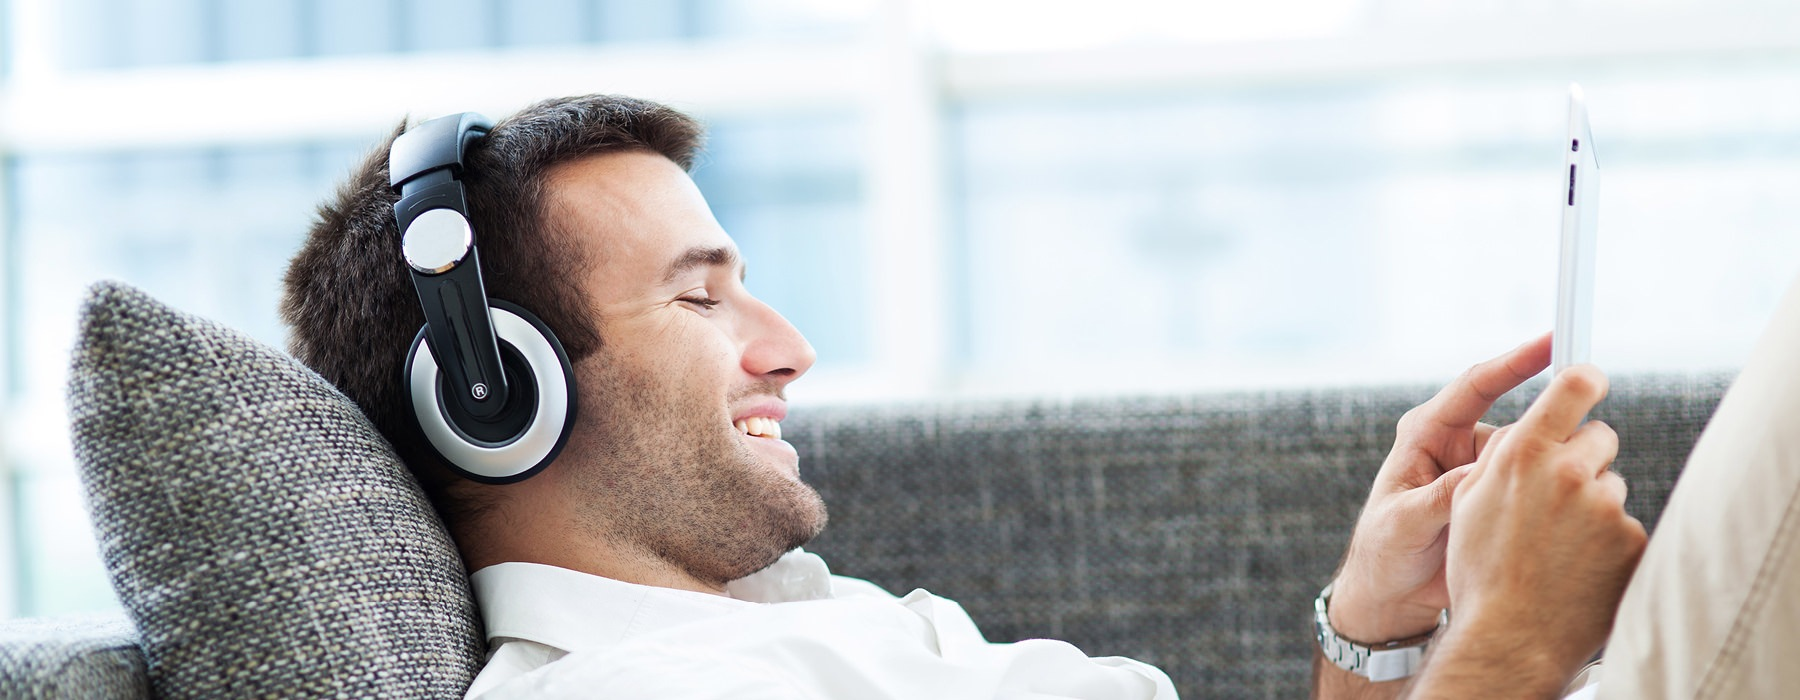 man with headphones on lays on sofa as he smiles at the device pad in his hands